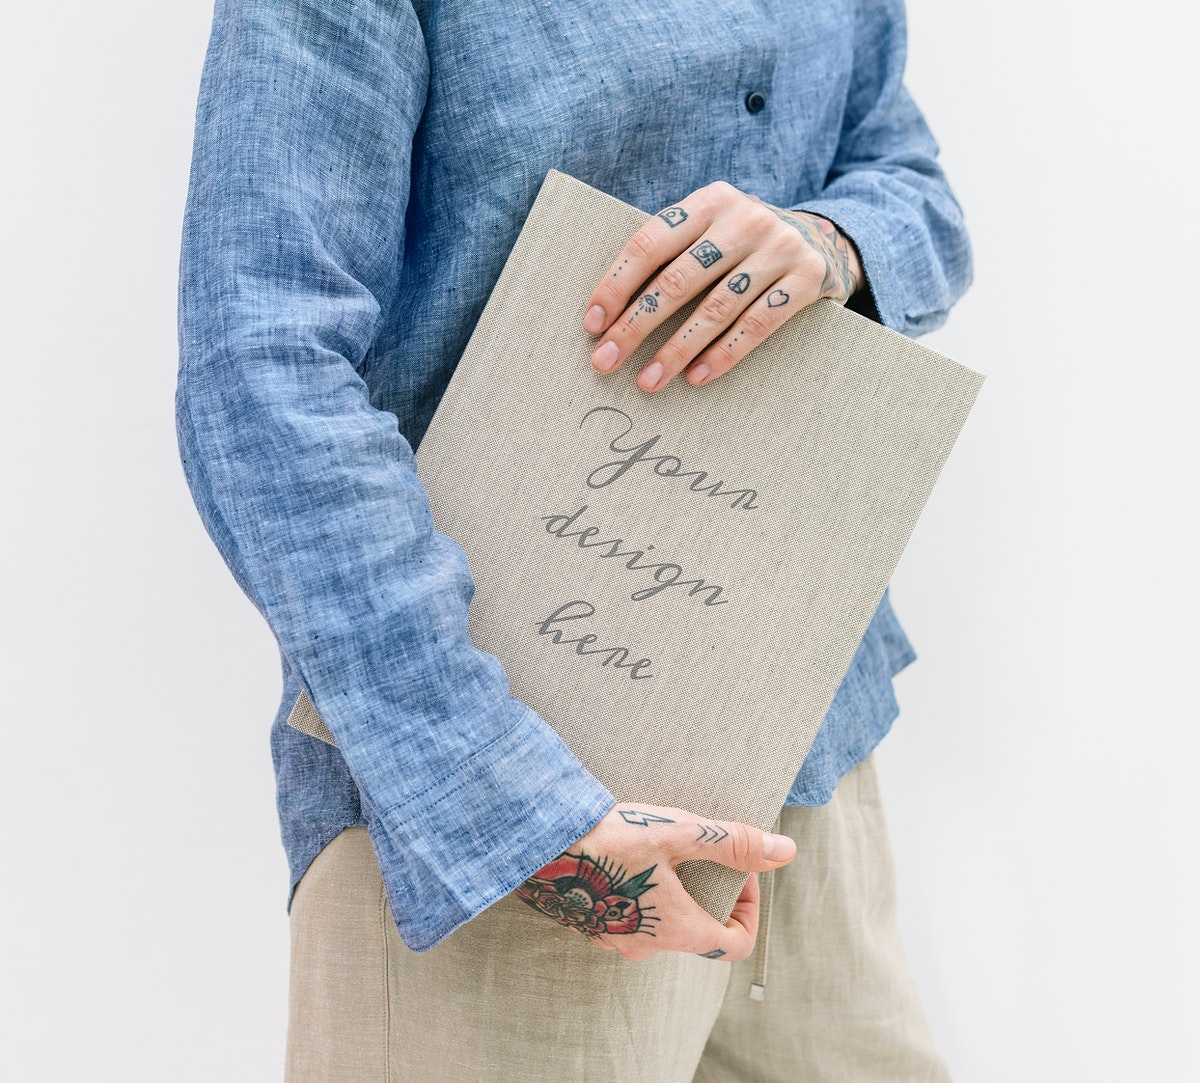 Tattooed woman in a blue linen shirt holding a book mockup